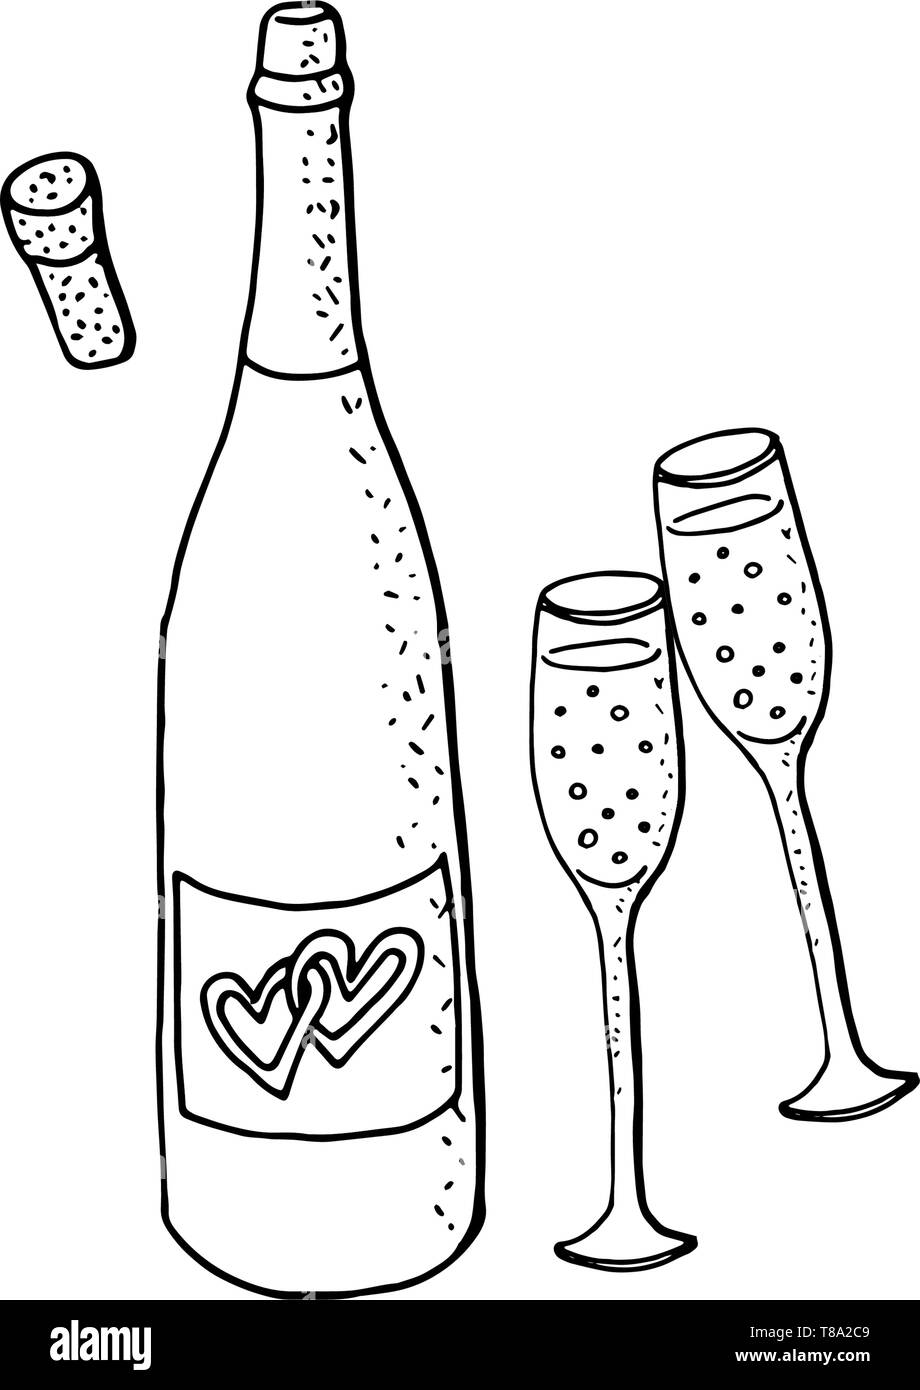 medium resolution of wedding clipart with green wine bottle and two glasses of sparkling wine